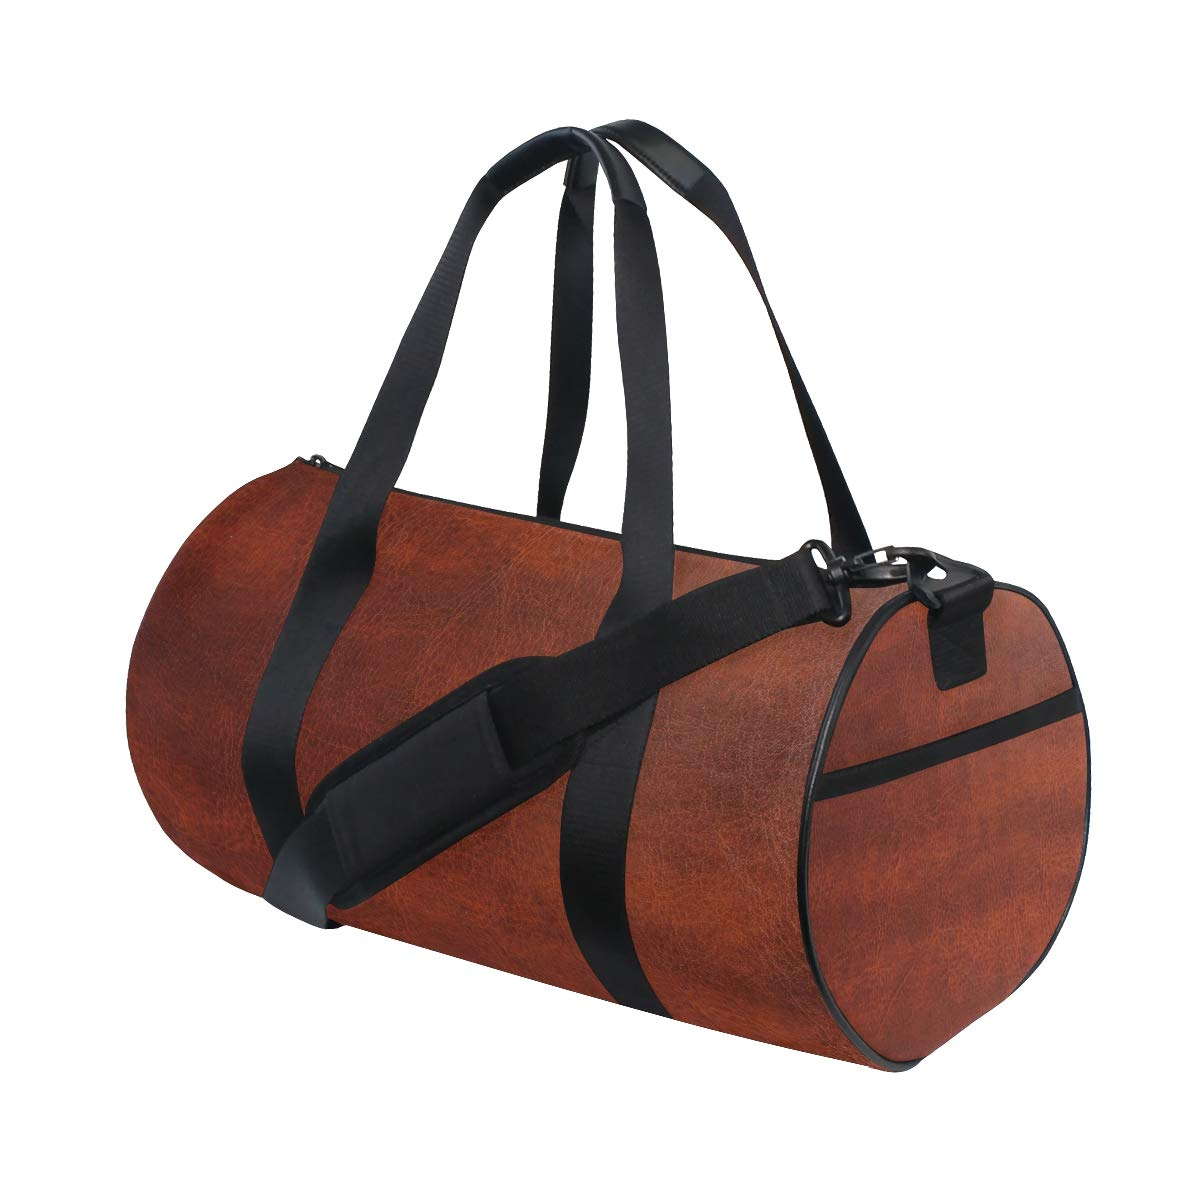 Brown Yoga Sports Gym Duffle Bags Tote Sling Travel Bag Patterned Canvas with Pocket and Zipper For Men Women Bag